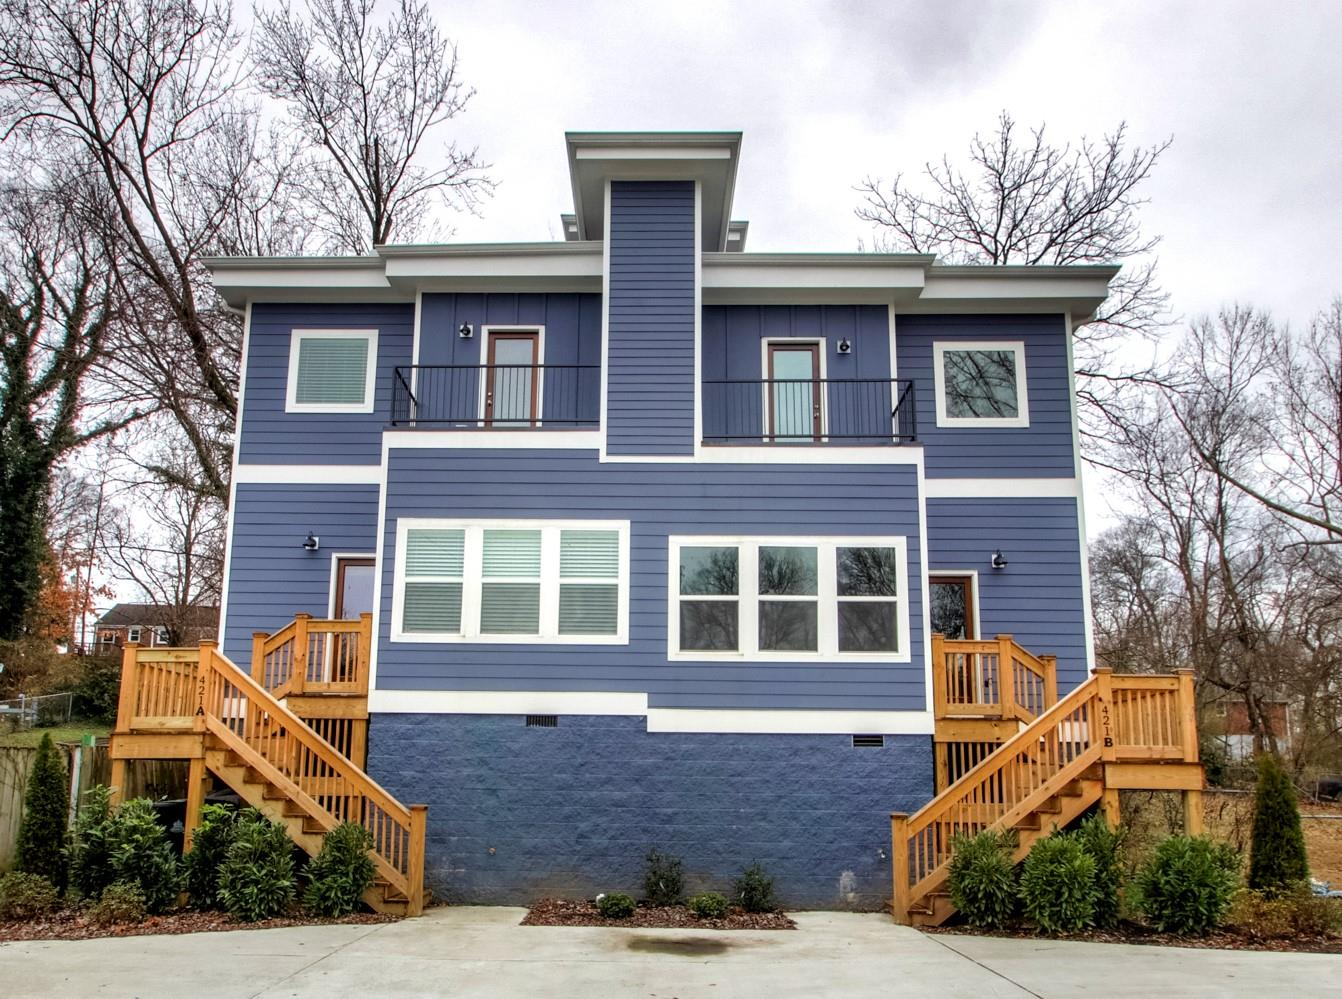 421B Moore Ave, Nashville - Midtown in Davidson County County, TN 37203 Home for Sale